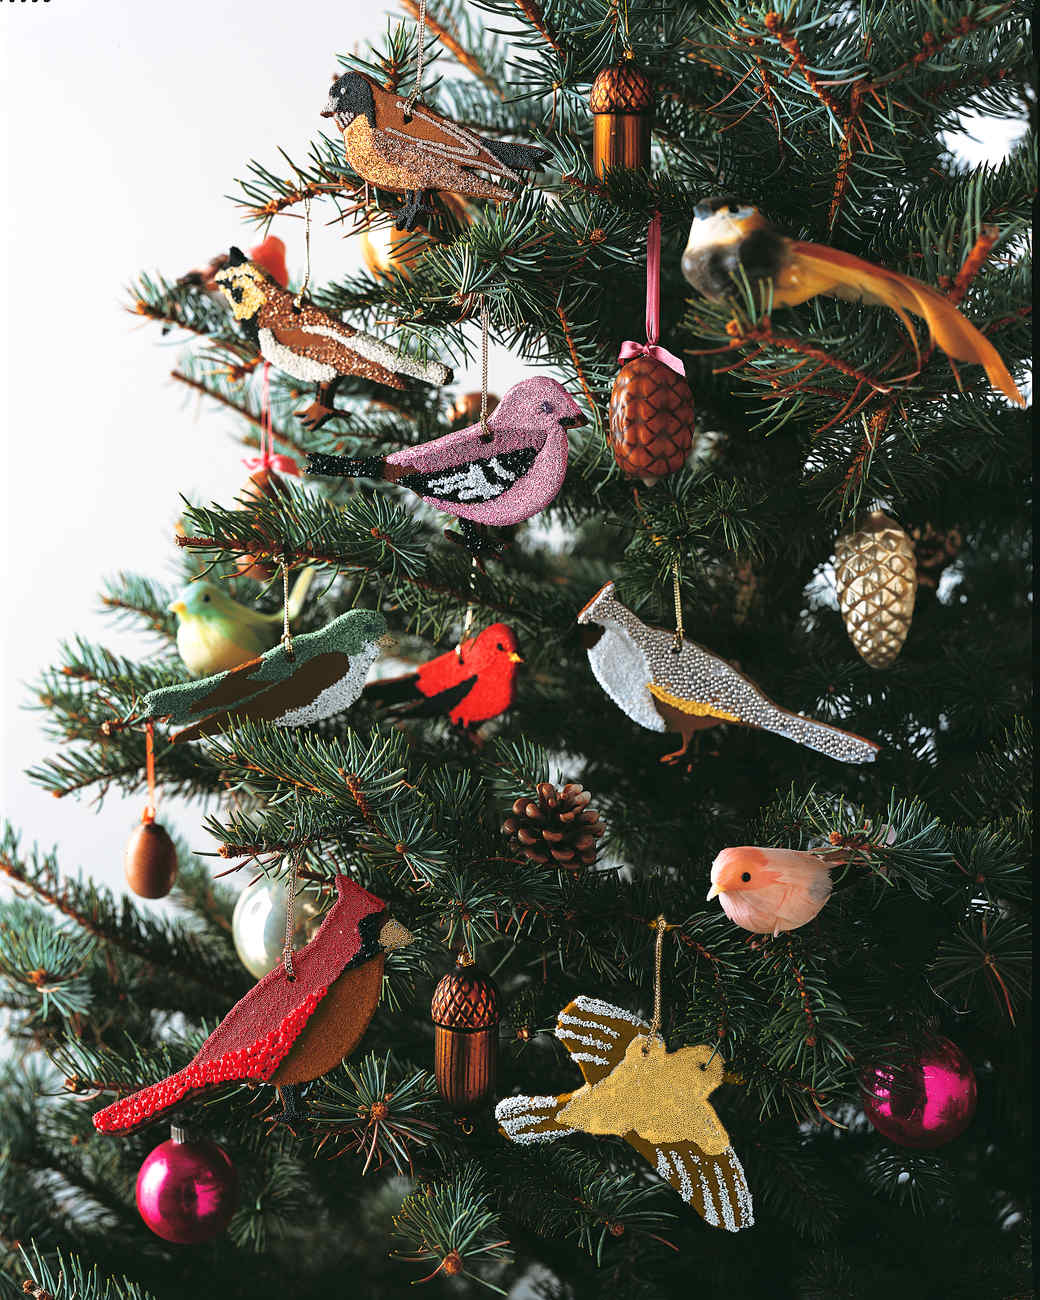 cinnamon bird ornament - Bird Ornaments For Christmas Tree